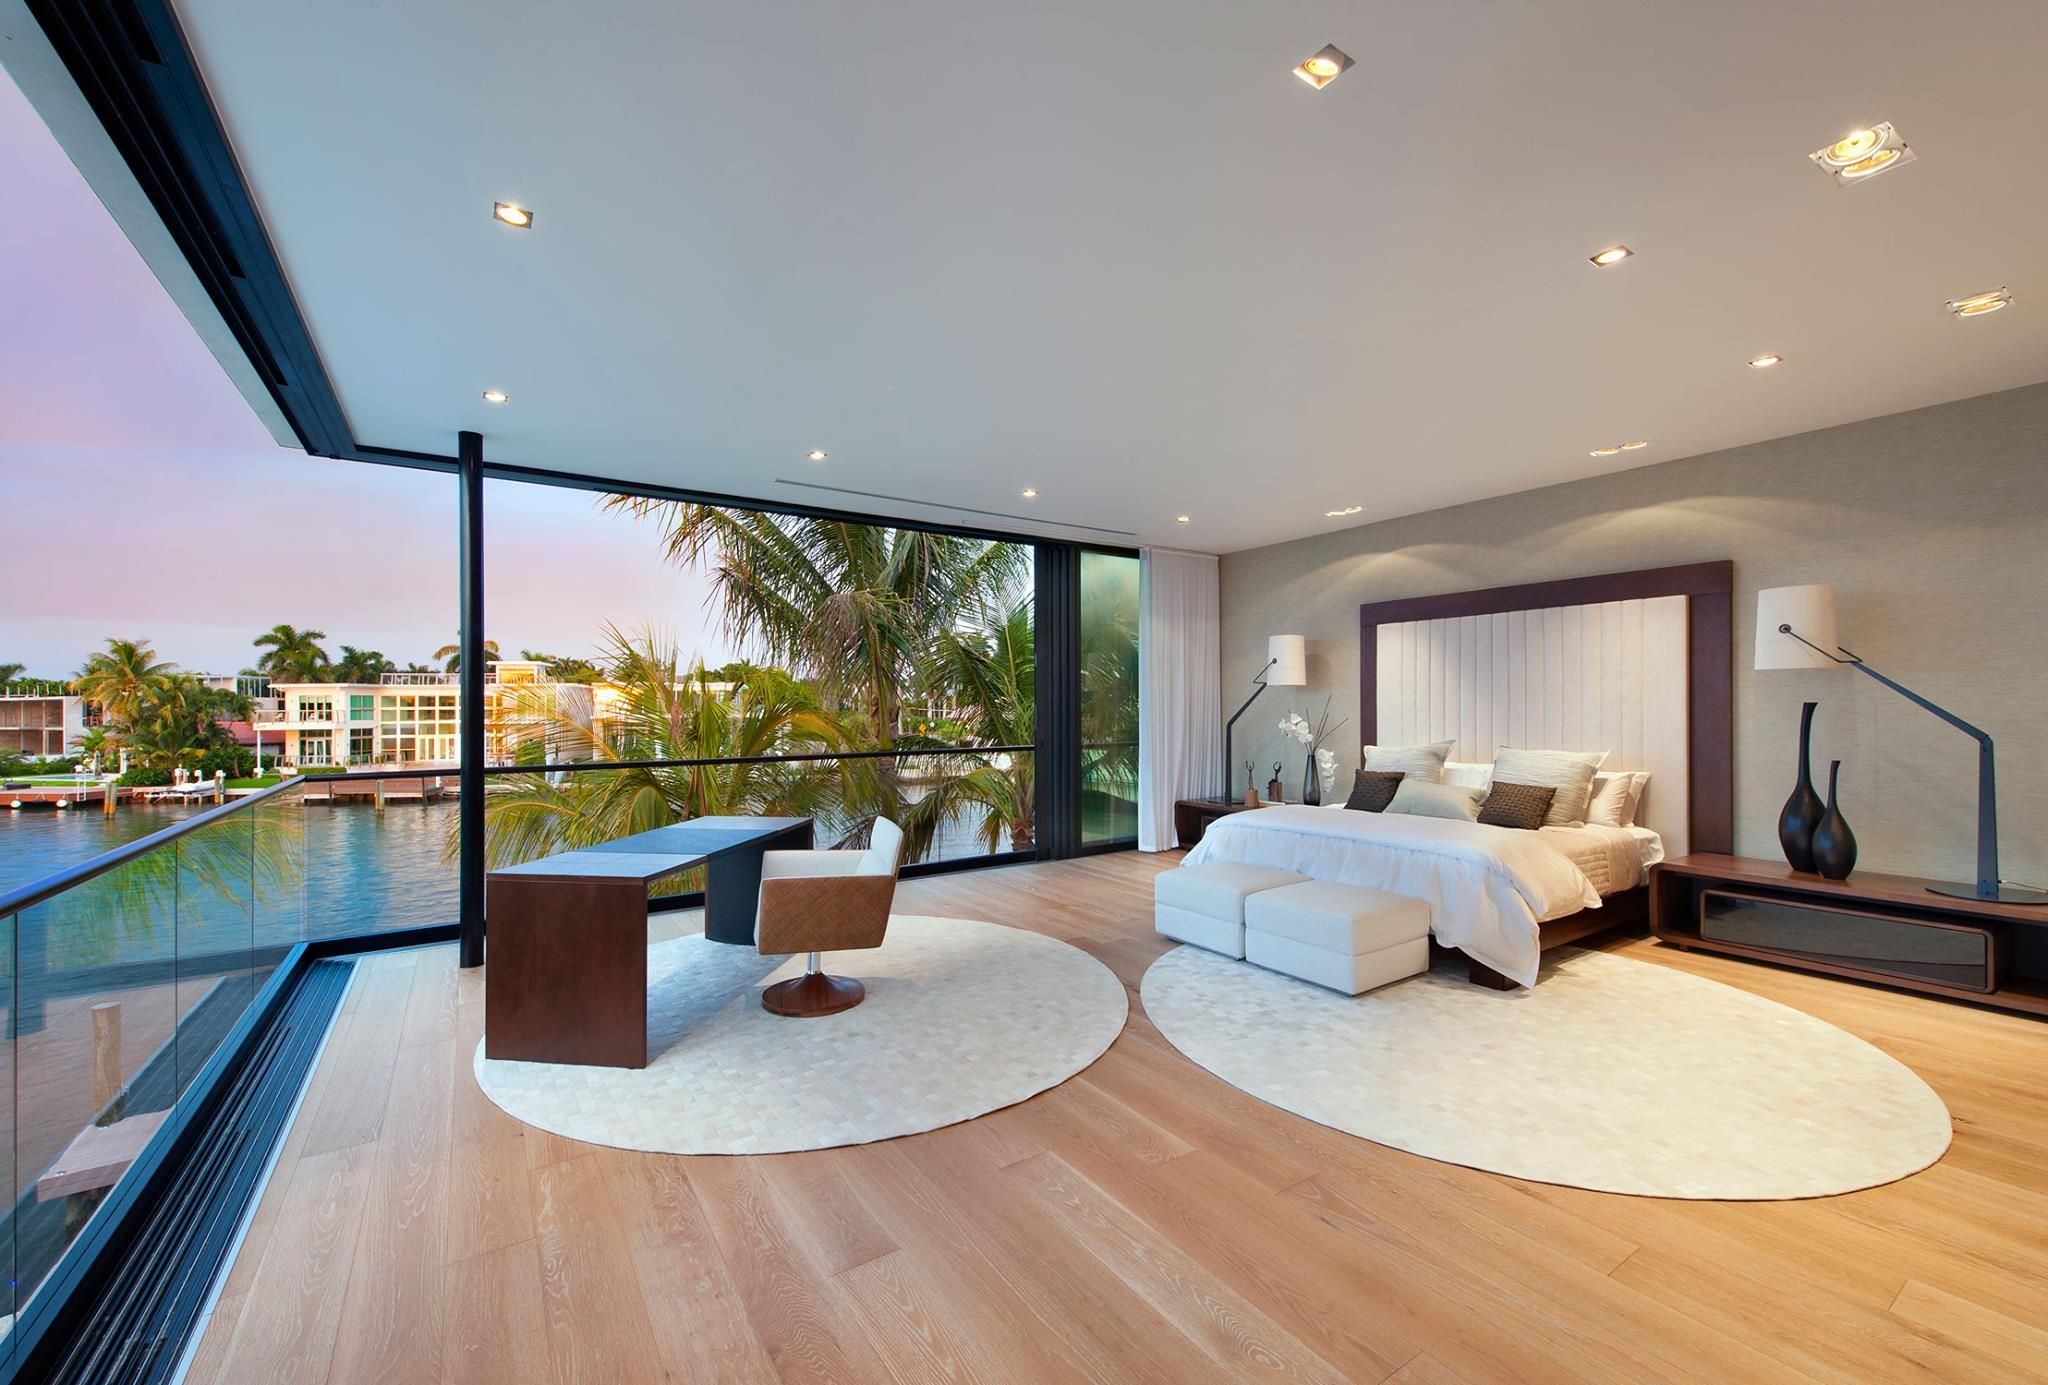 Stunning contemporary luxury home offers over 9,600 sq ft